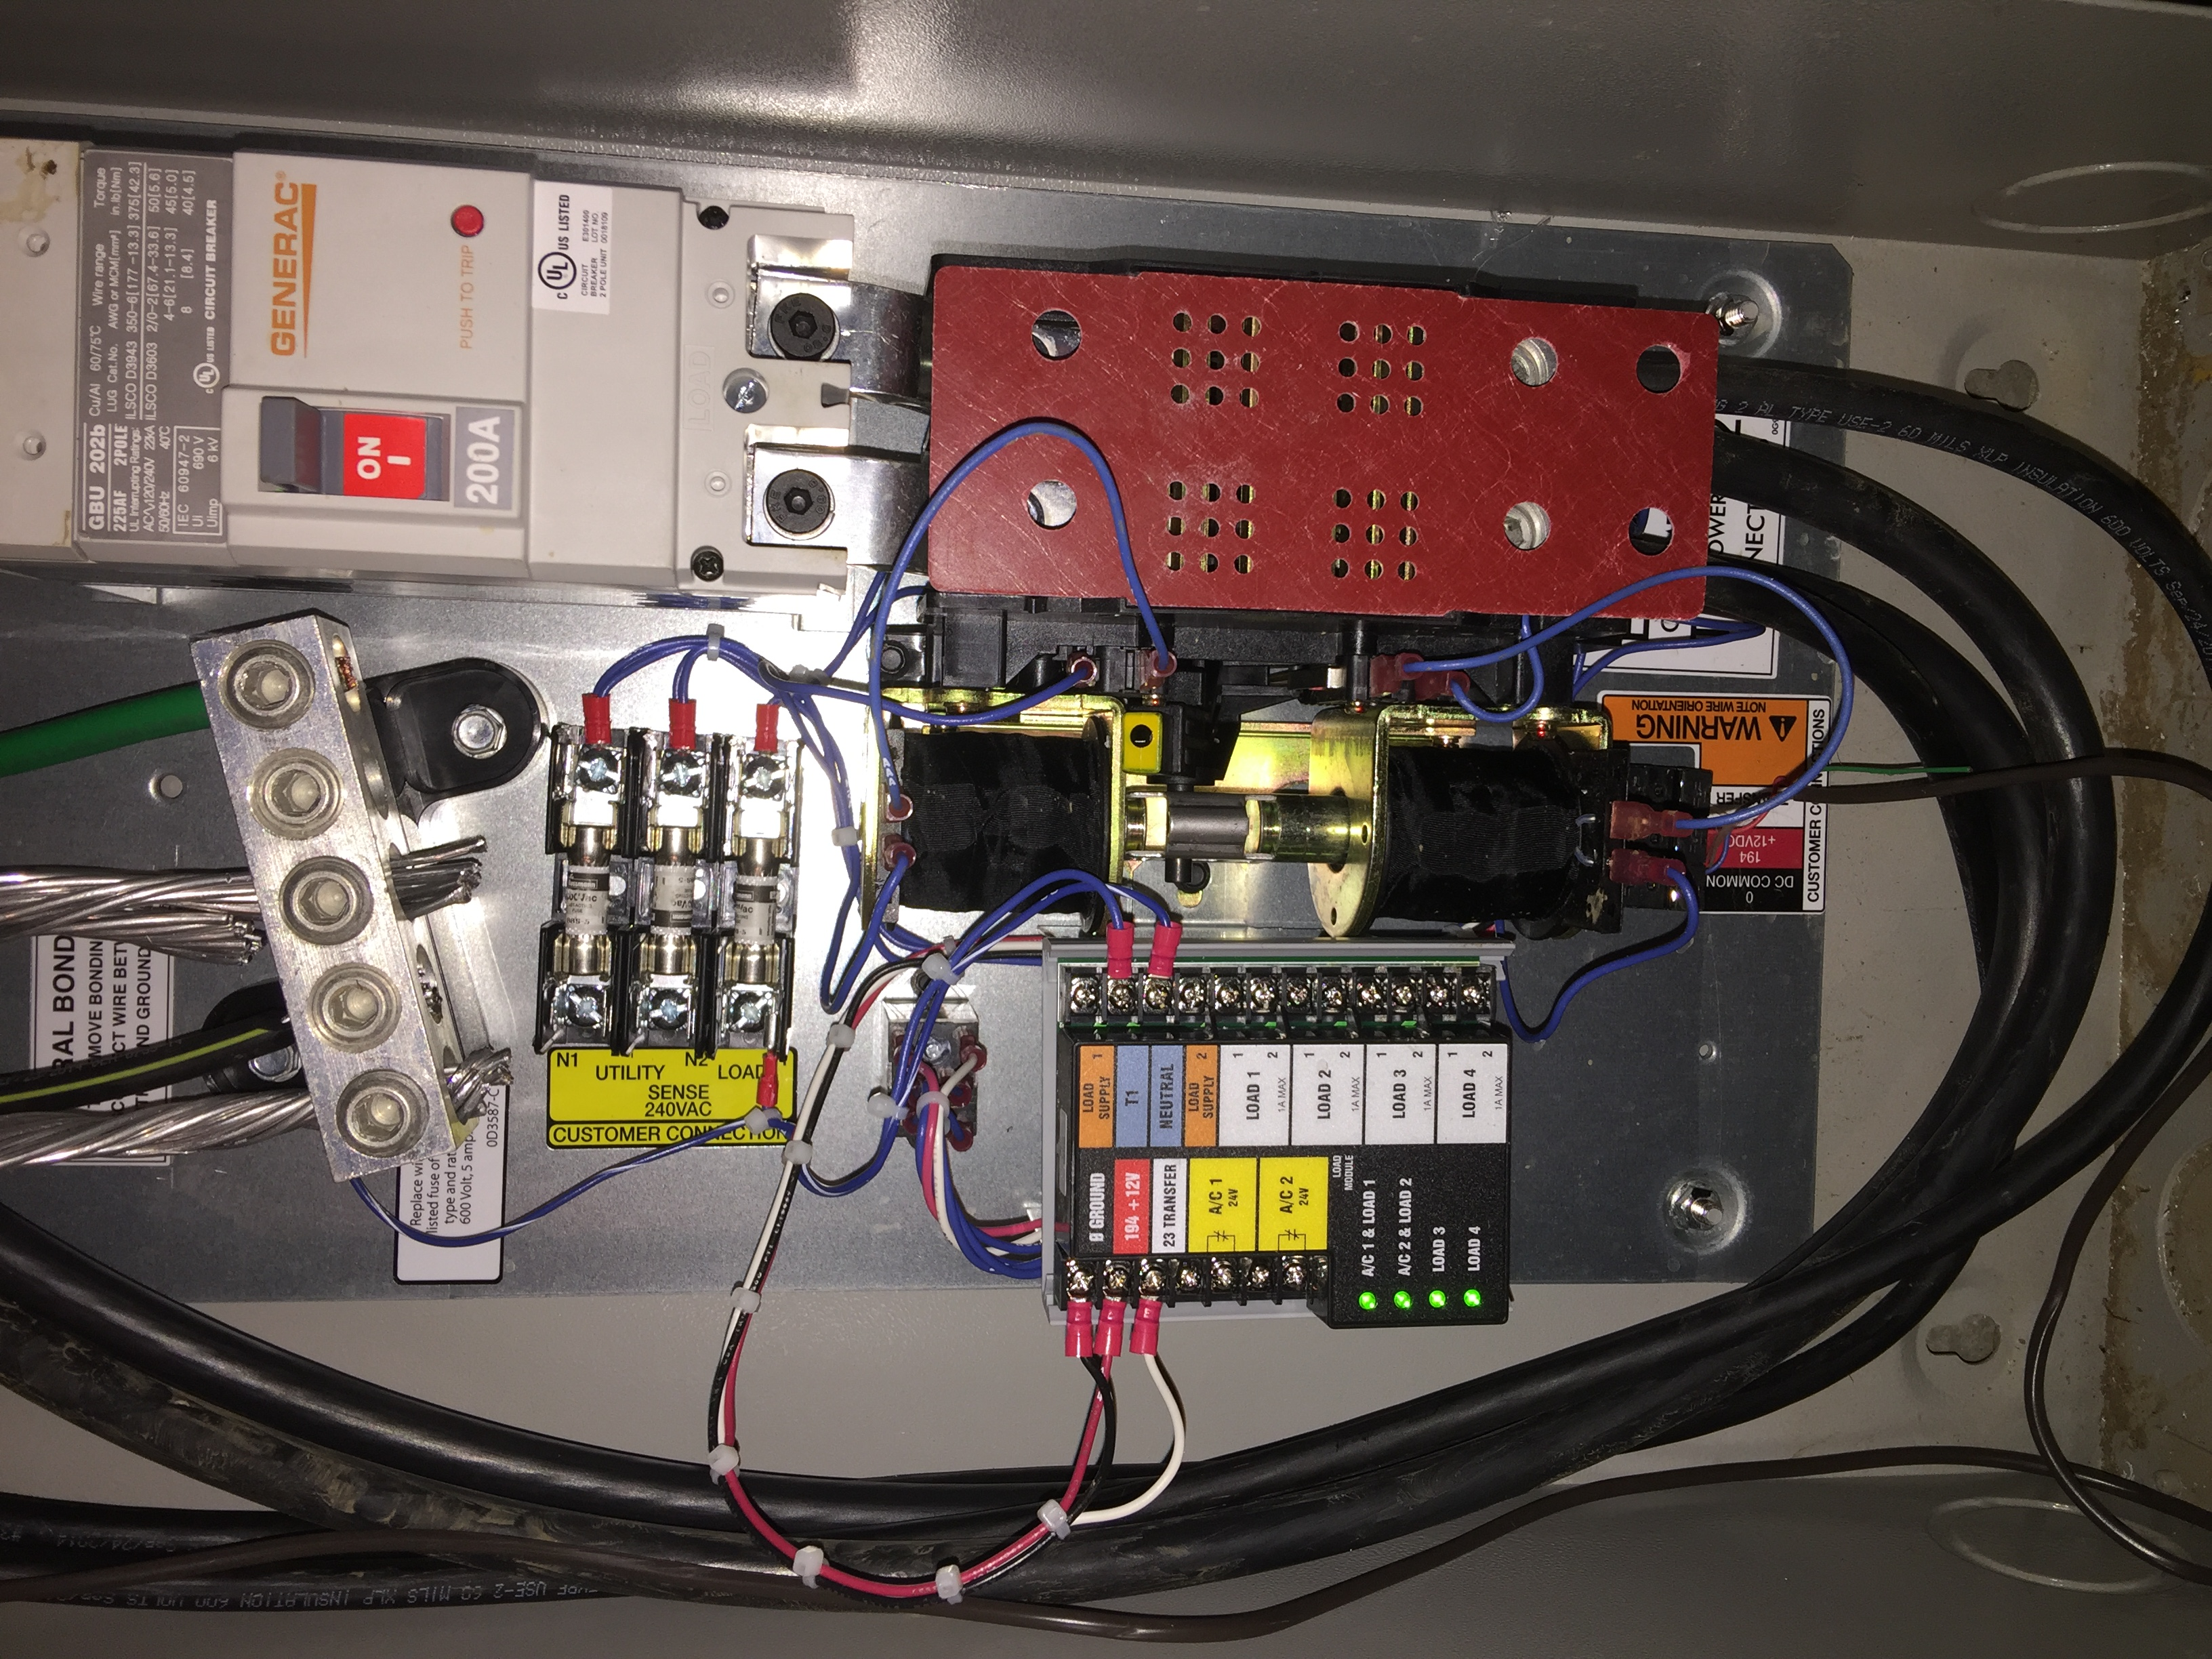 I Just Installed A Generac 11kw Generator For Our House It Runs Ronk Transfer Switch Wiring Diagram Imagejpegimagejpeg Imagejpeg